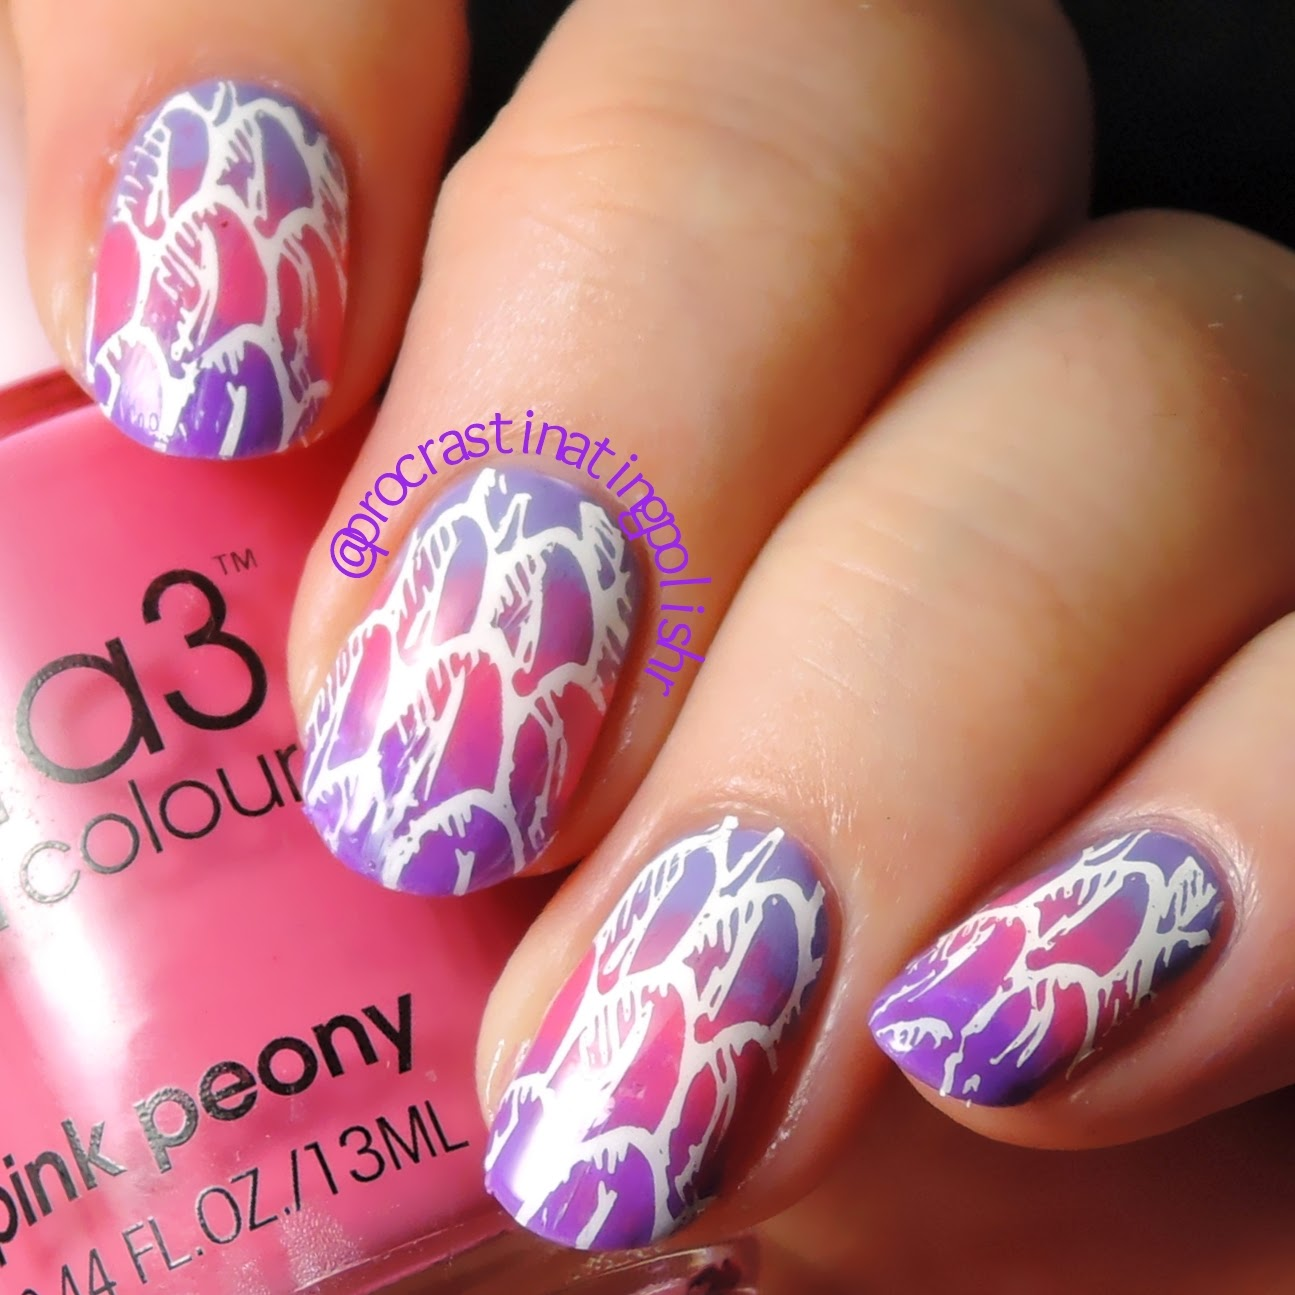 52 week challenge Week 2 - Stamped over gradient nail art